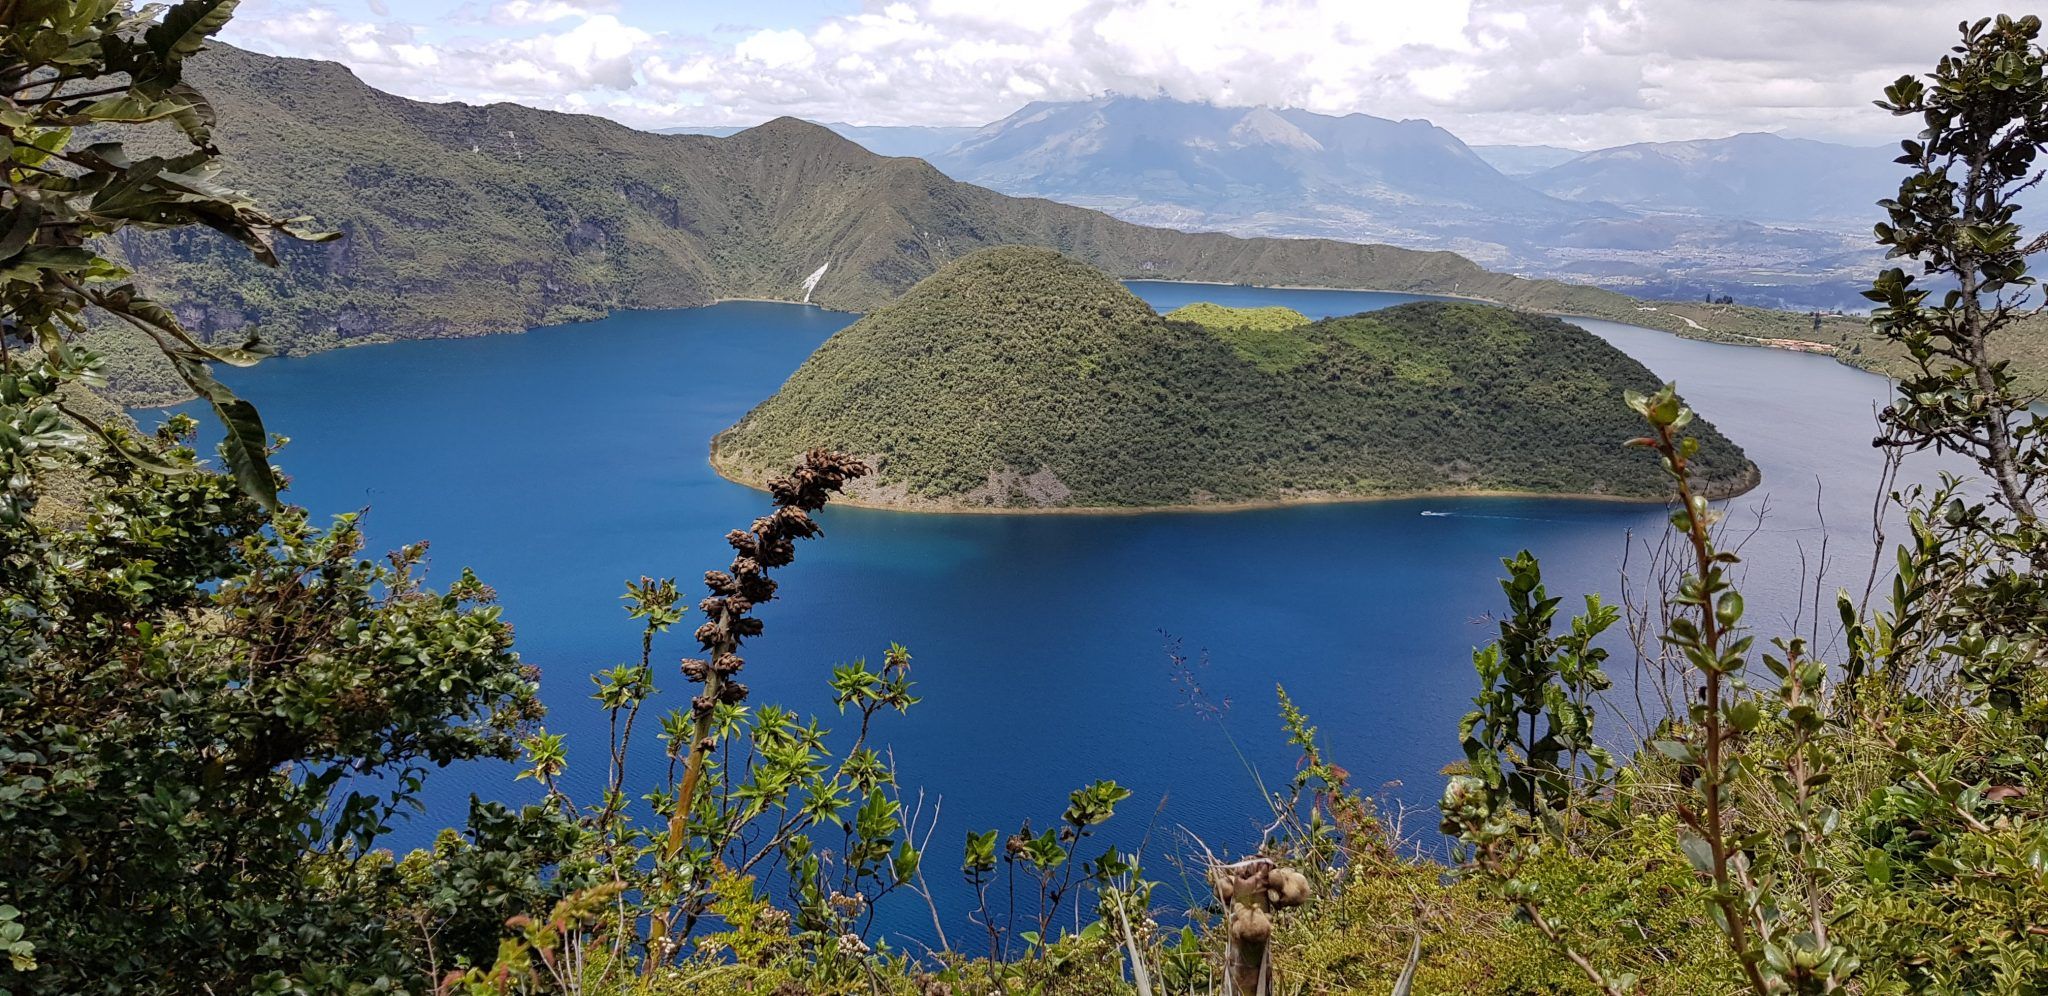 My top 5 reasons why you should visit Otavalo